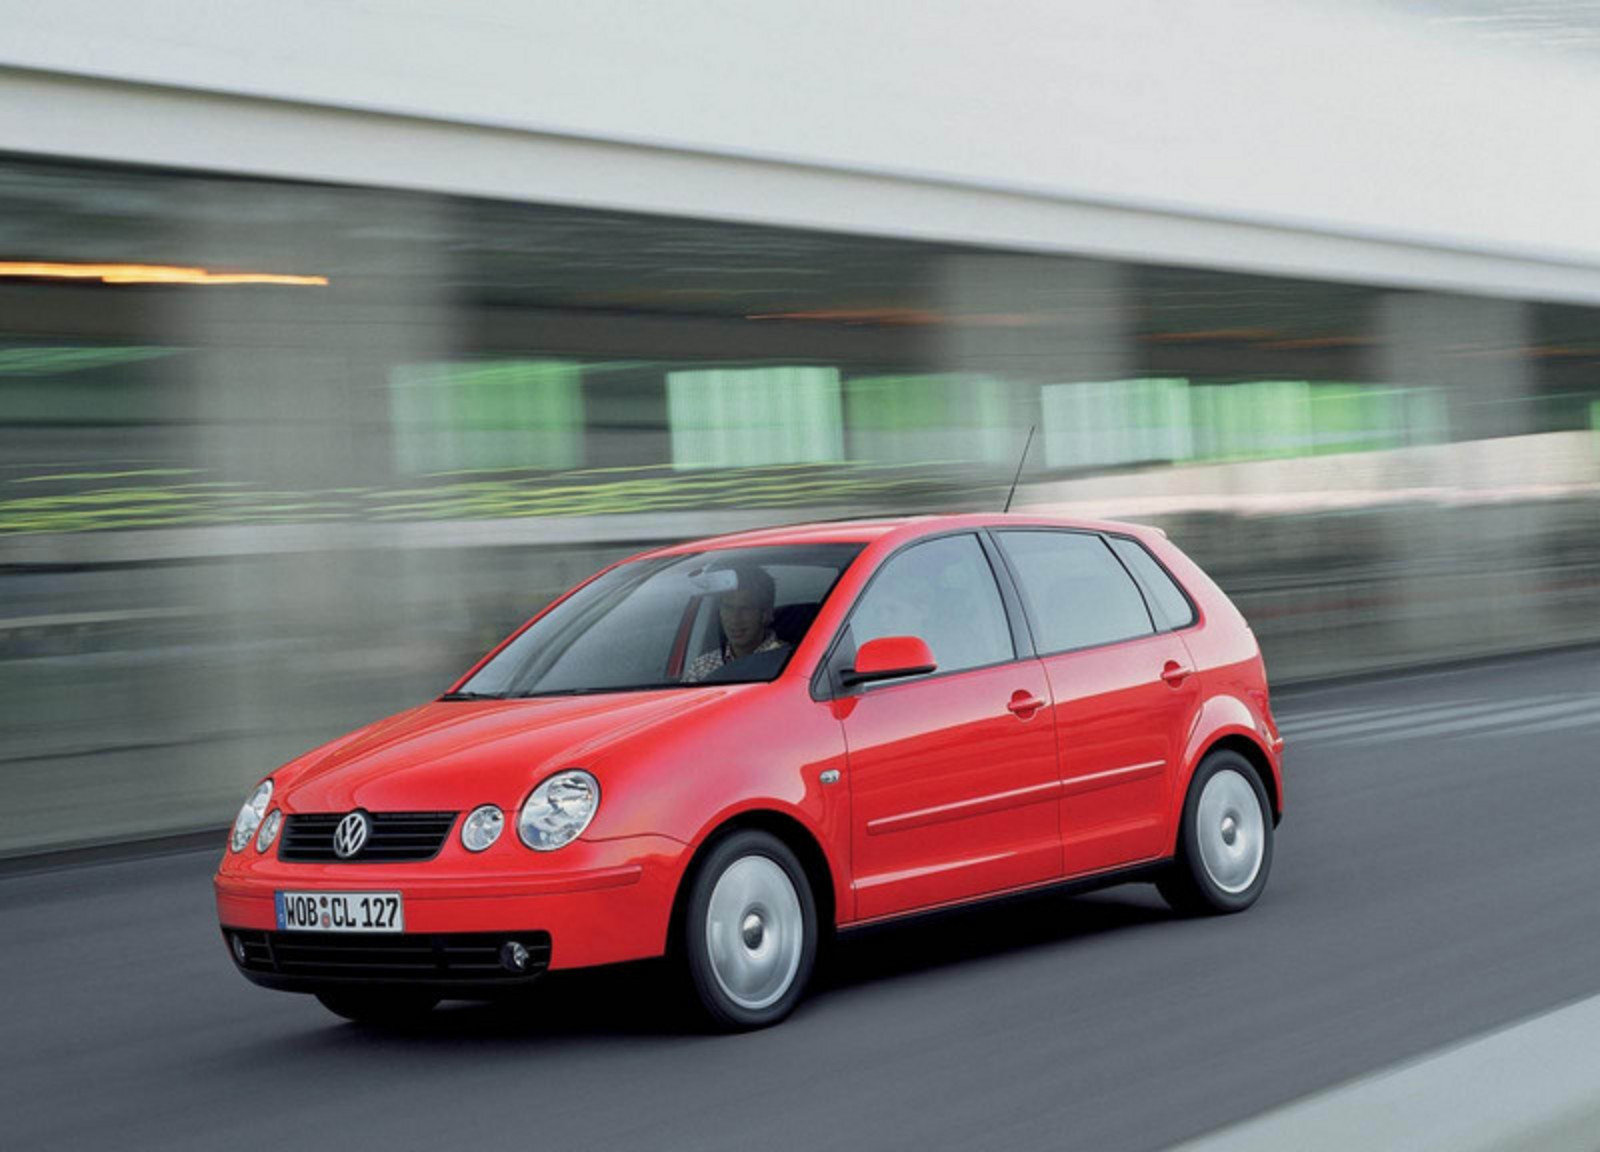 2005 volkswagen polo picture 17488 car review top speed. Black Bedroom Furniture Sets. Home Design Ideas